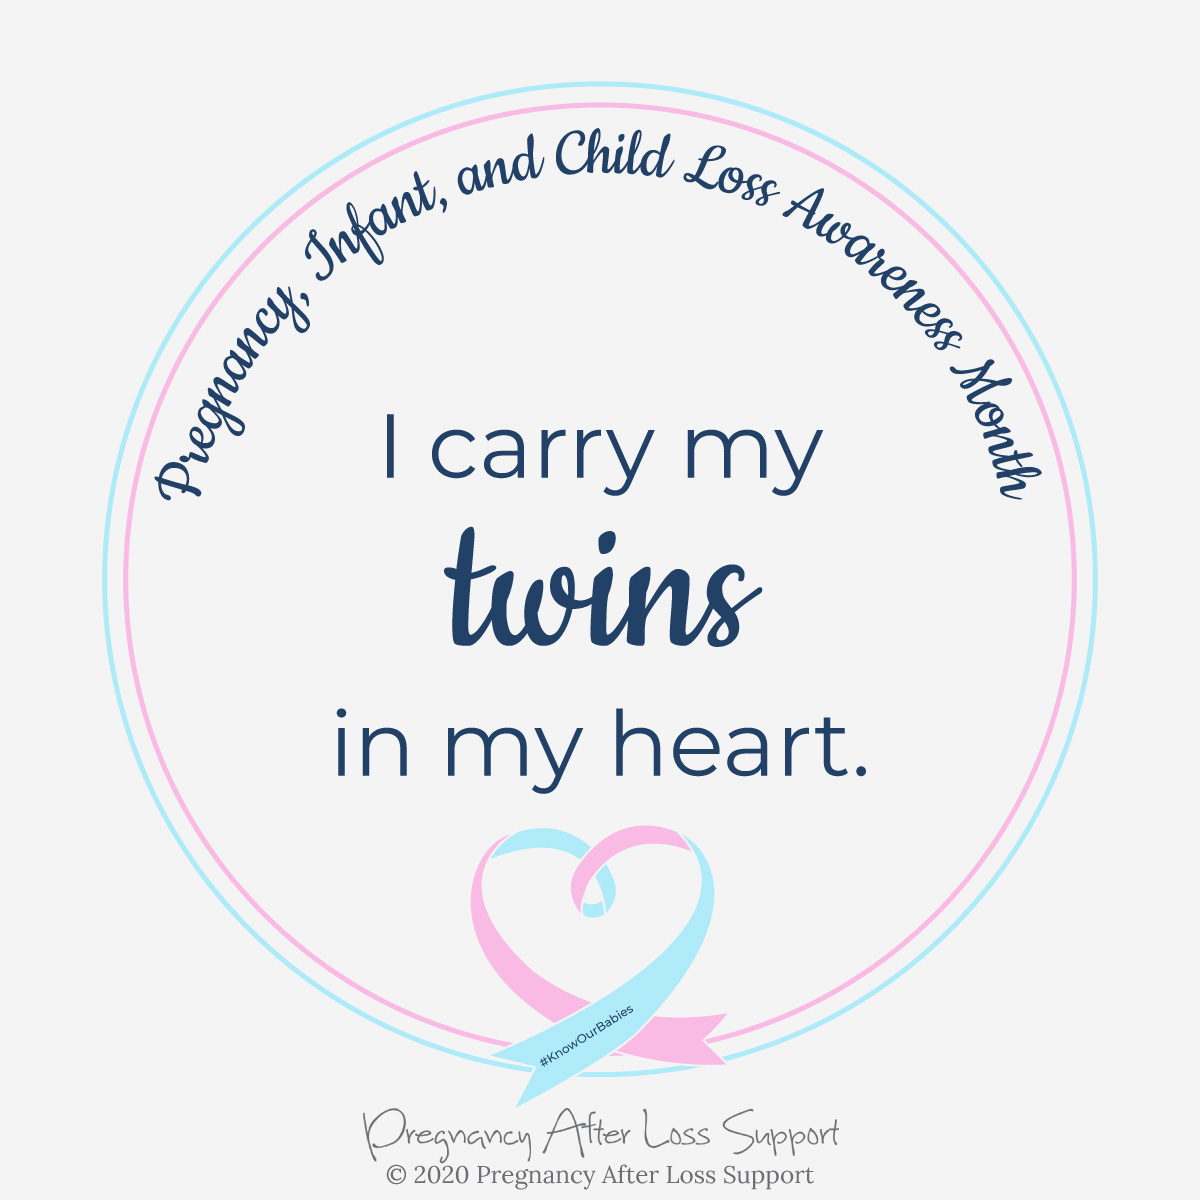 I carry my twins in my heart - Pregnancy, Infant, and Child Loss Awareness Month